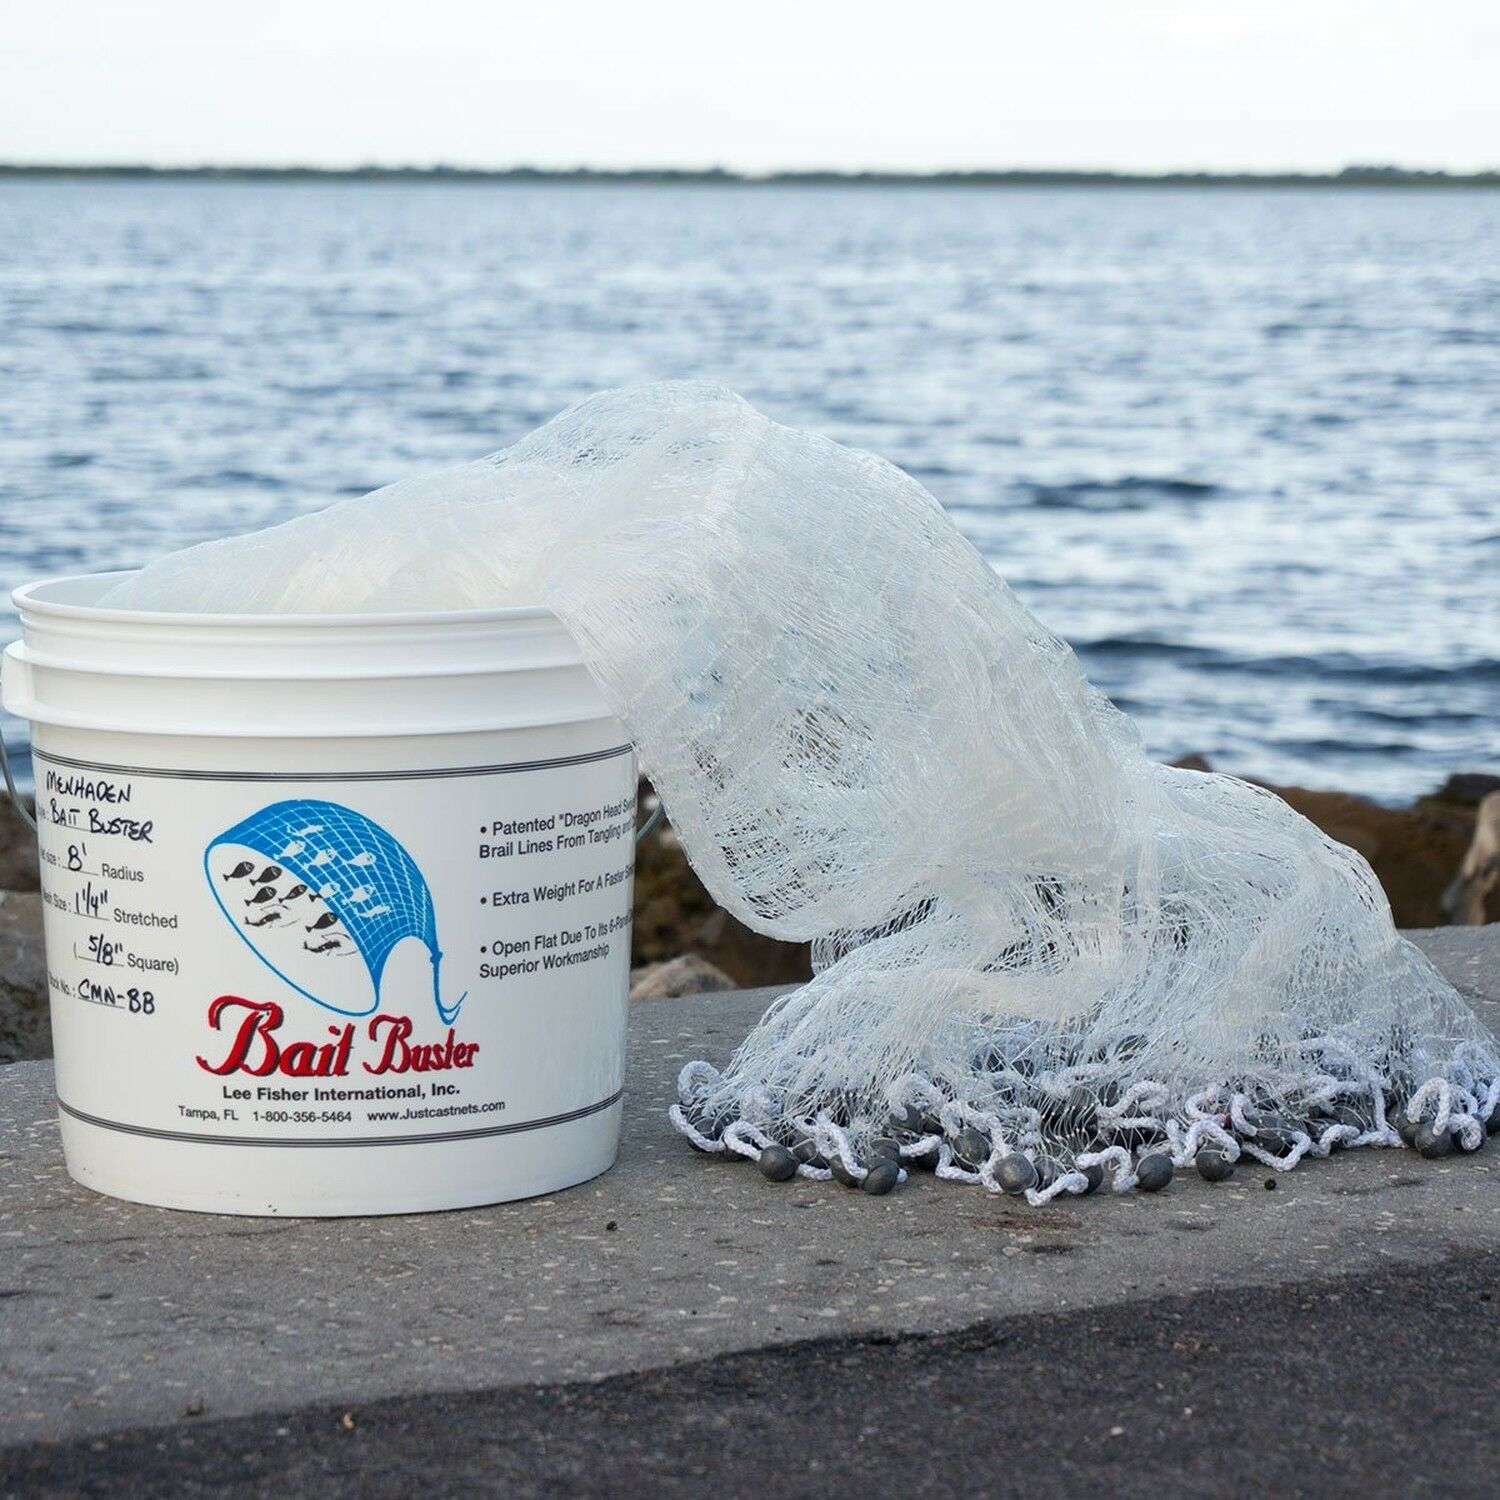 Bait  Buster Menhaden Cast Net with 5 8  Squared Mesh - 10 Foot Radius  after-sale protection